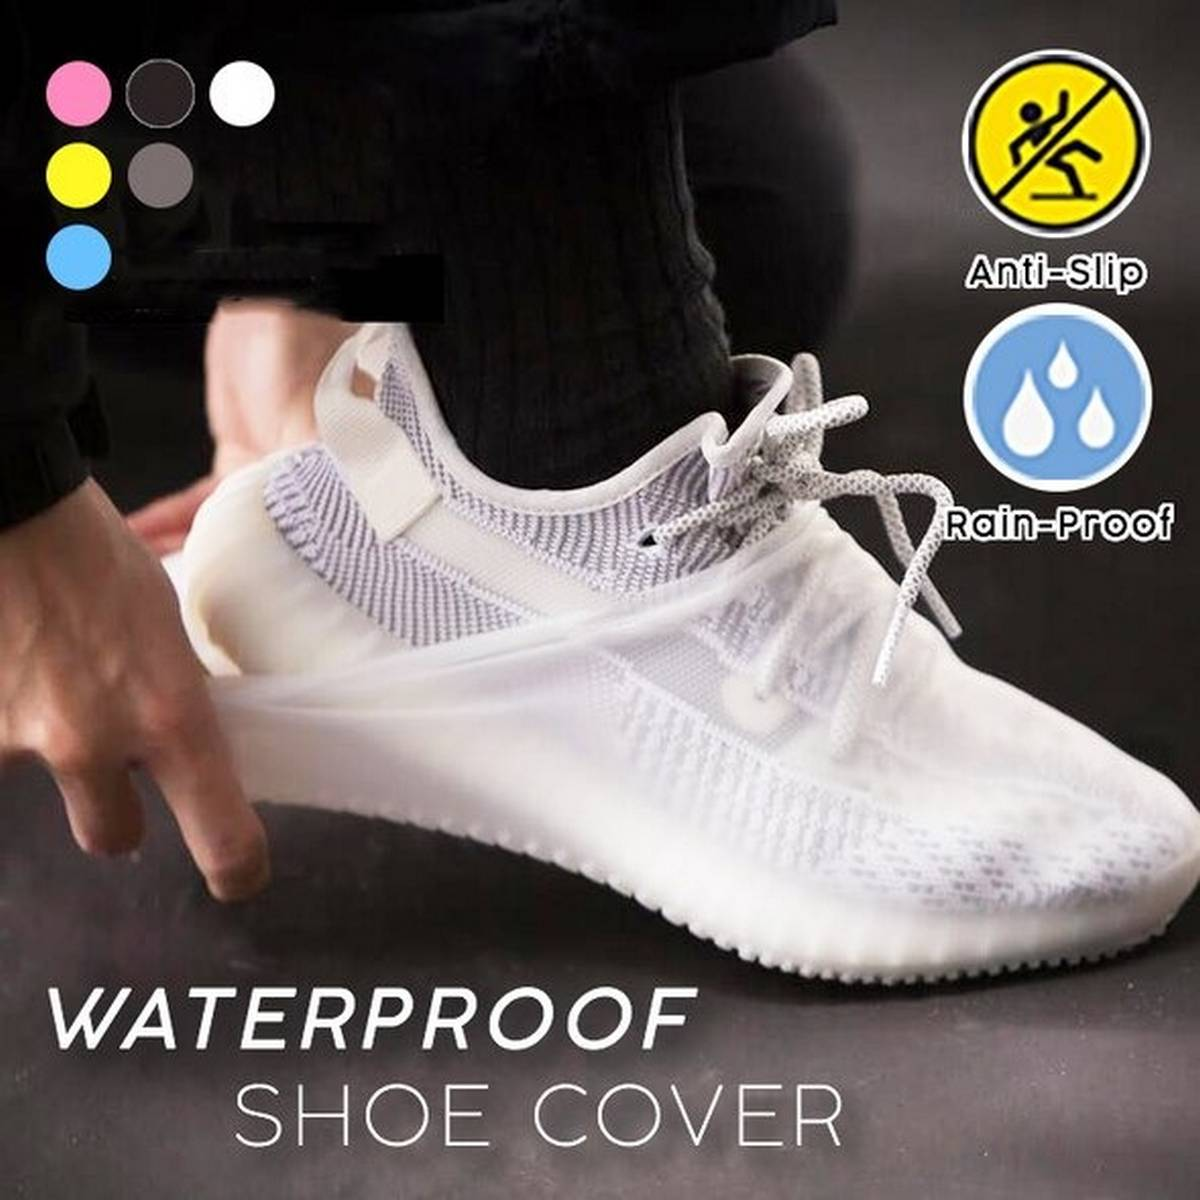 New Reusable  Nonslip Silicone Shoe Covers Waterproof Rain Shoe Covers Outdoor Camping Unisex Shoe Protector Waterproof Boots Barish Shoe Cover Pakistan Tour travel Foot Cover